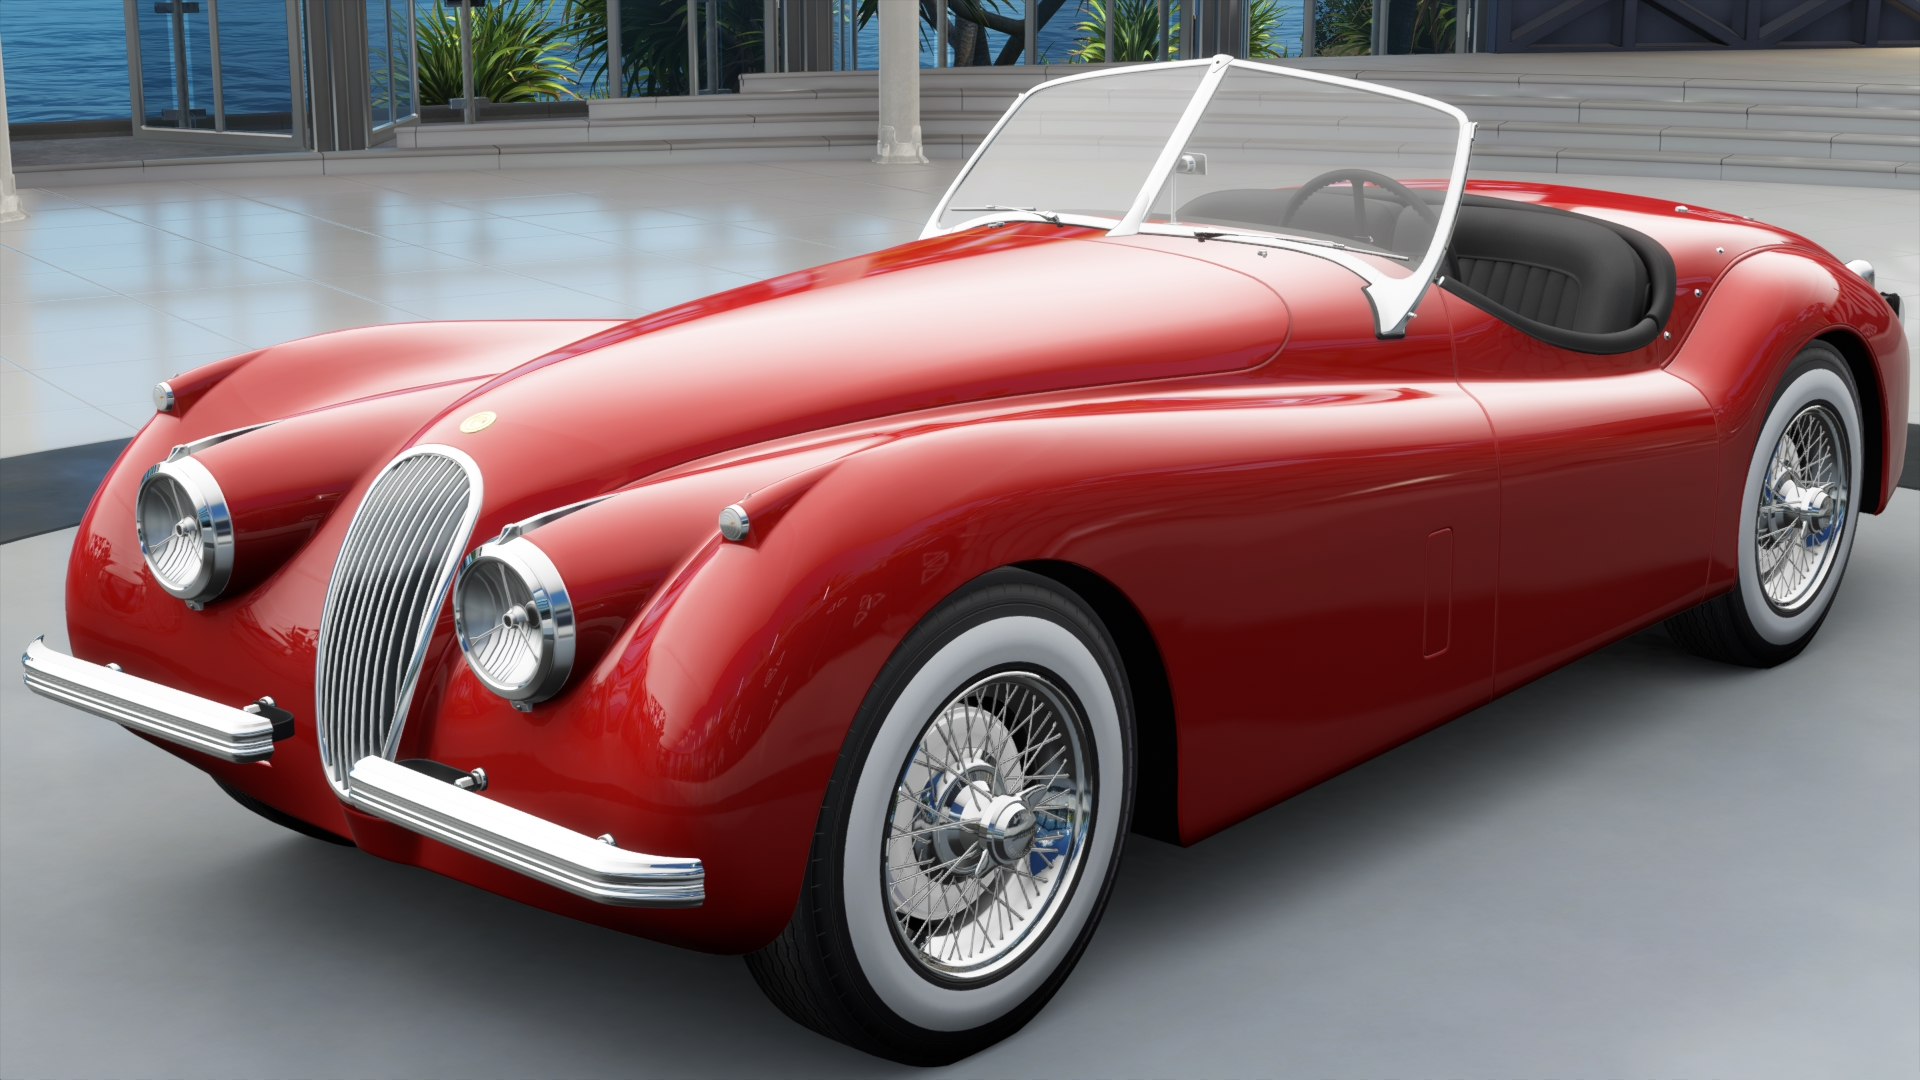 jaguar xk 120 se forza motorsport wiki fandom powered by wikia. Black Bedroom Furniture Sets. Home Design Ideas